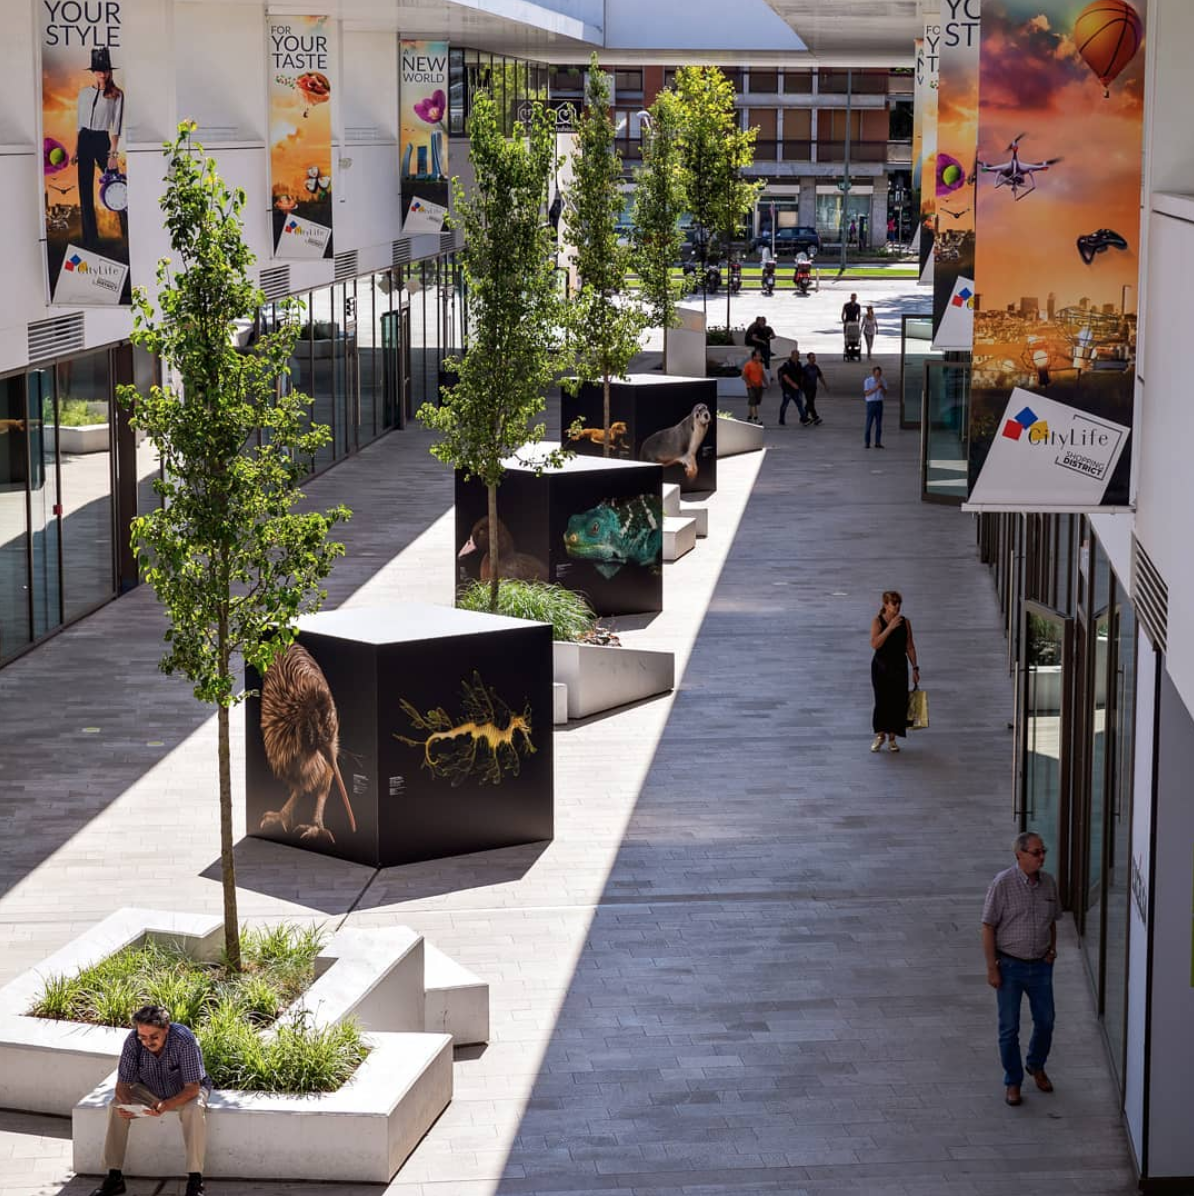 A closer outdoor view of CityLife shopping district, an example of biophilic design.